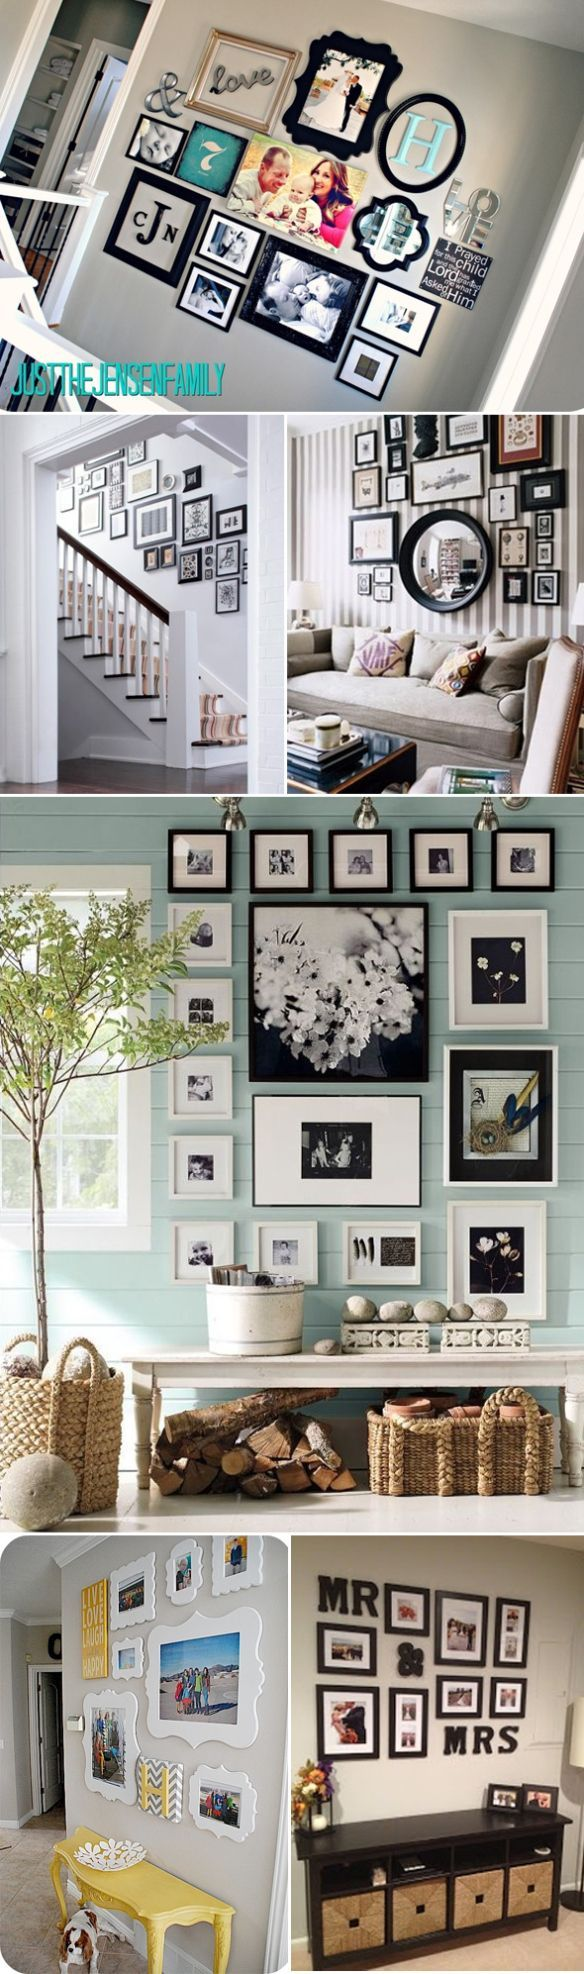 Great ideas for picture hanging arrangements!! - Cute Decor. I want to do this, especially with travel and family photos.